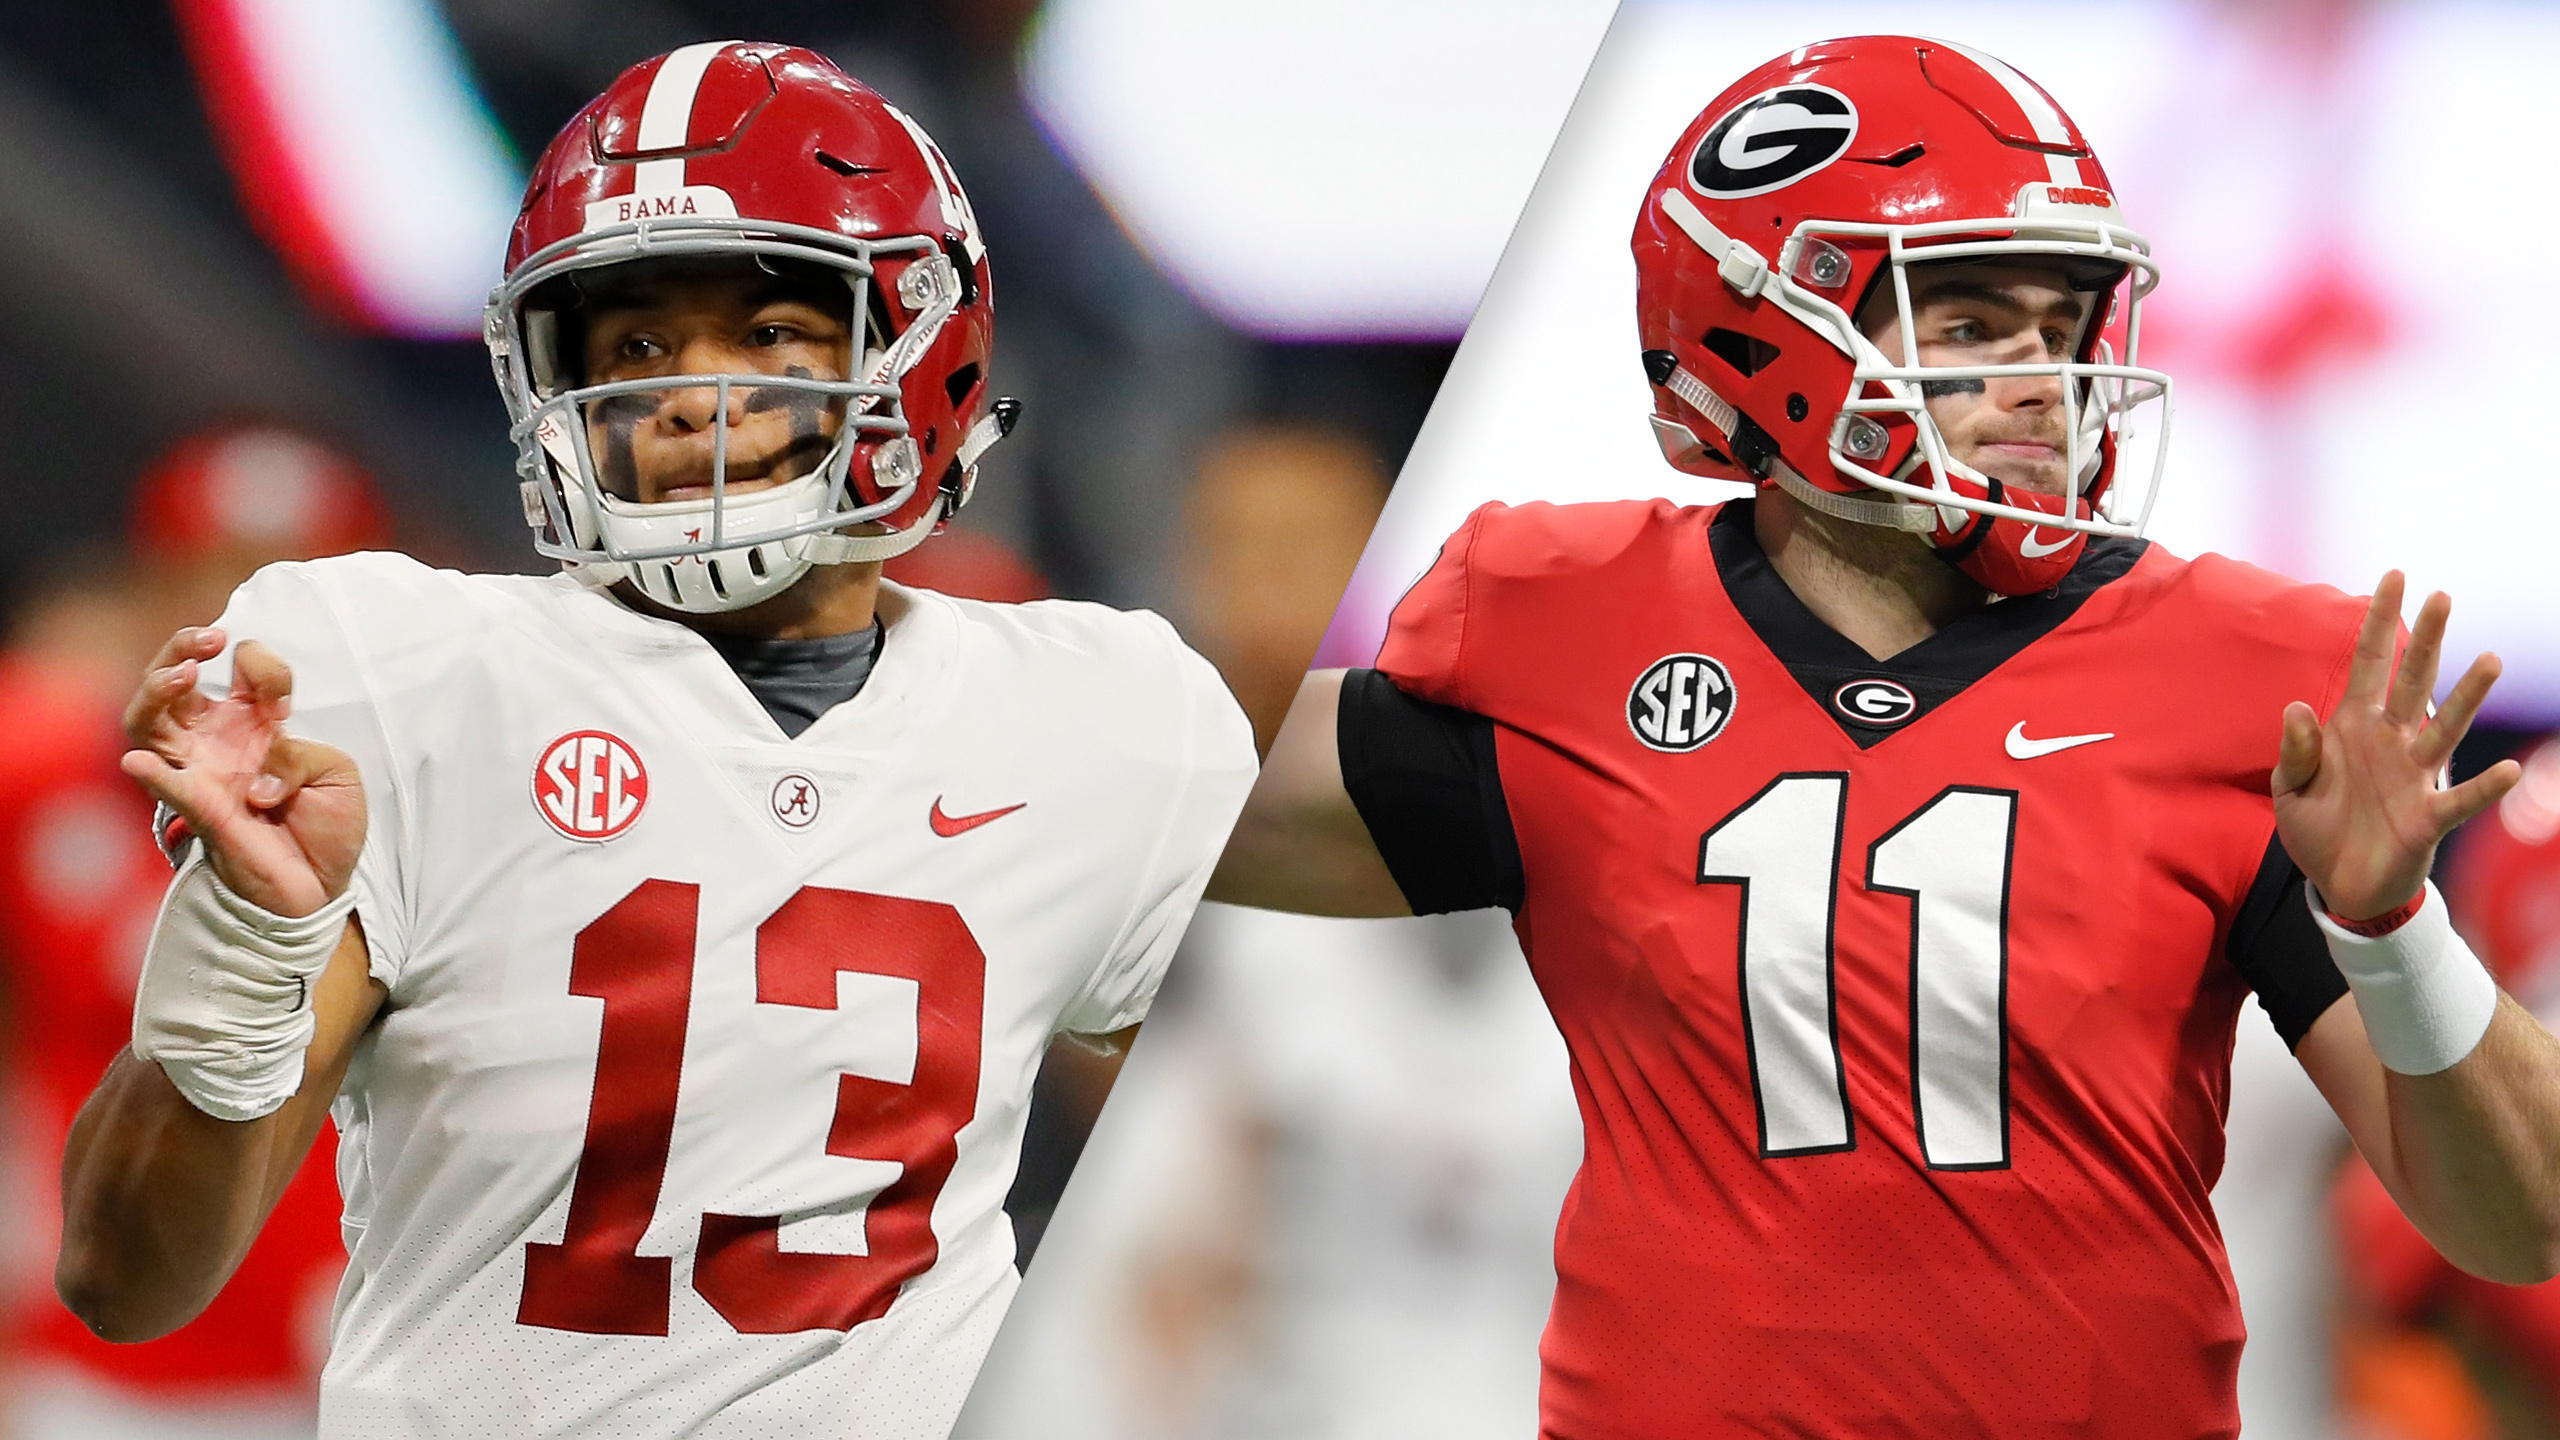 #1 Alabama vs. #4 Georgia (SEC Football Championship) (re-air)